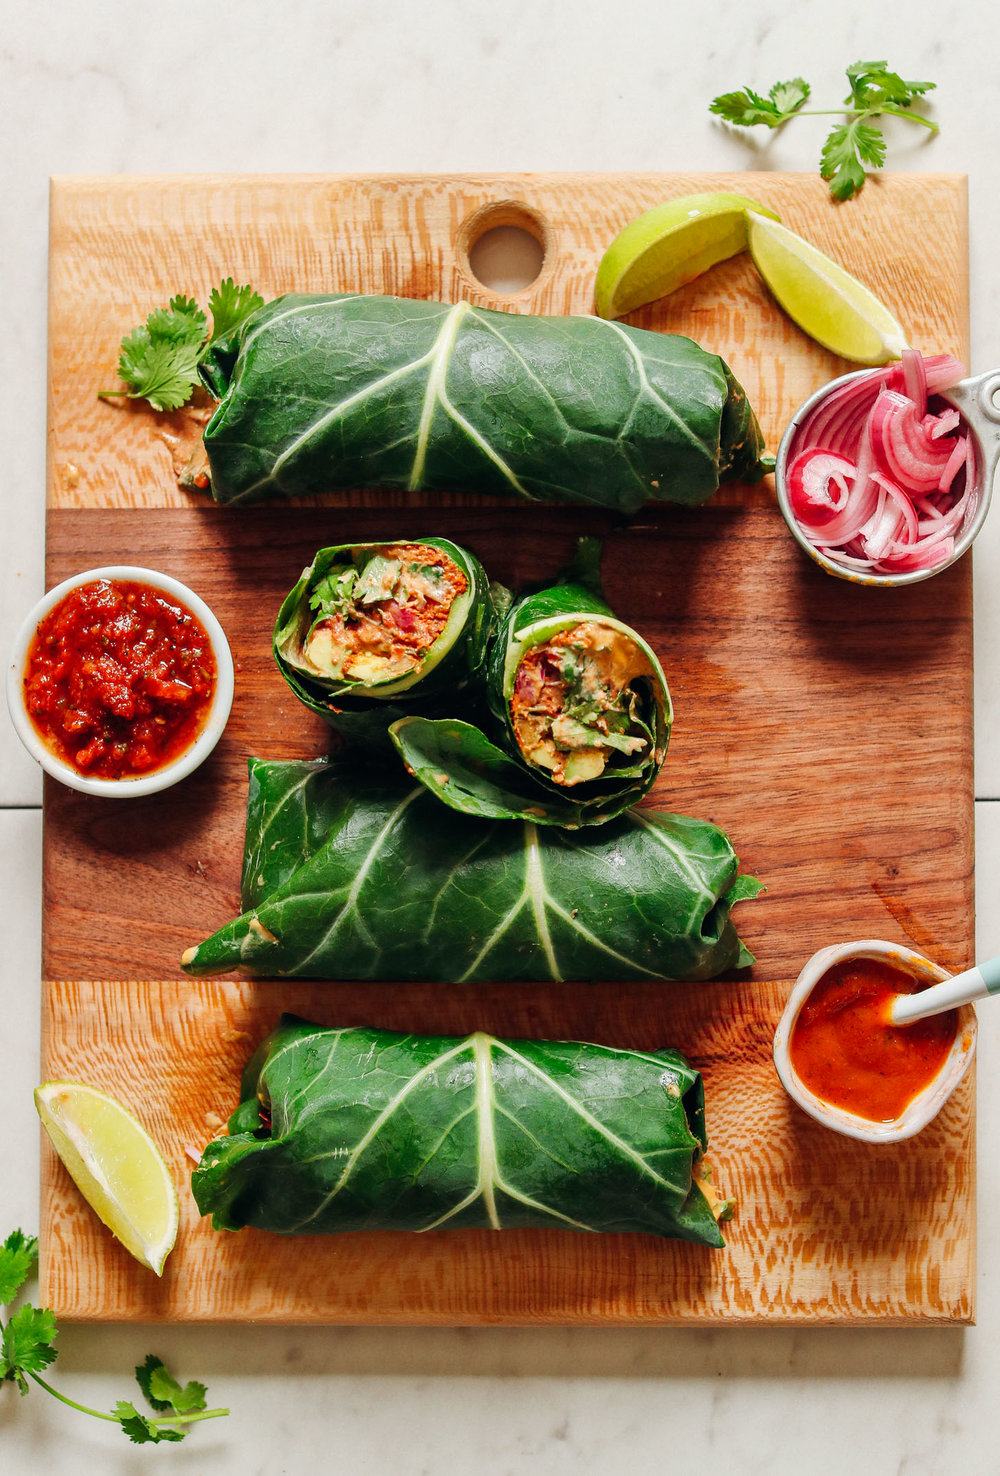 FRESH-Raw-Vegan-Burritos-with-Vegan-Taco-Meat-avocado-and-Vegan-Queso-30-minutes-8-ingredients-BIG-flavor-vegan-glutenfree-mexicanfood-recipe-burrito-7.jpg